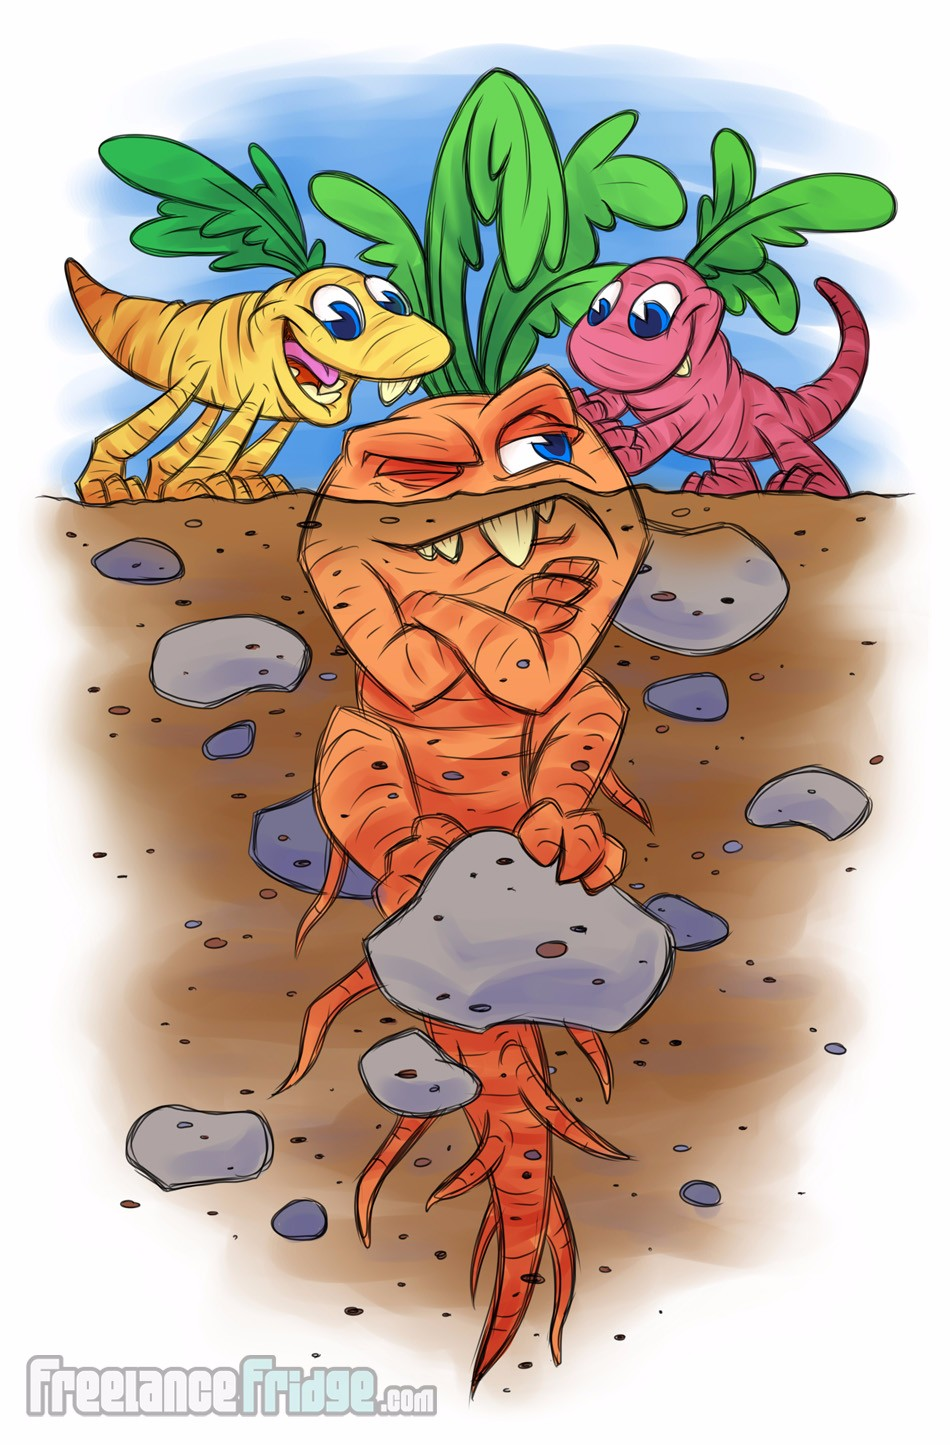 Cartoon Carrot Root Dinosaur Characters Creatures, little dinos trying to get older root creature to come out of the ground into the sunlight